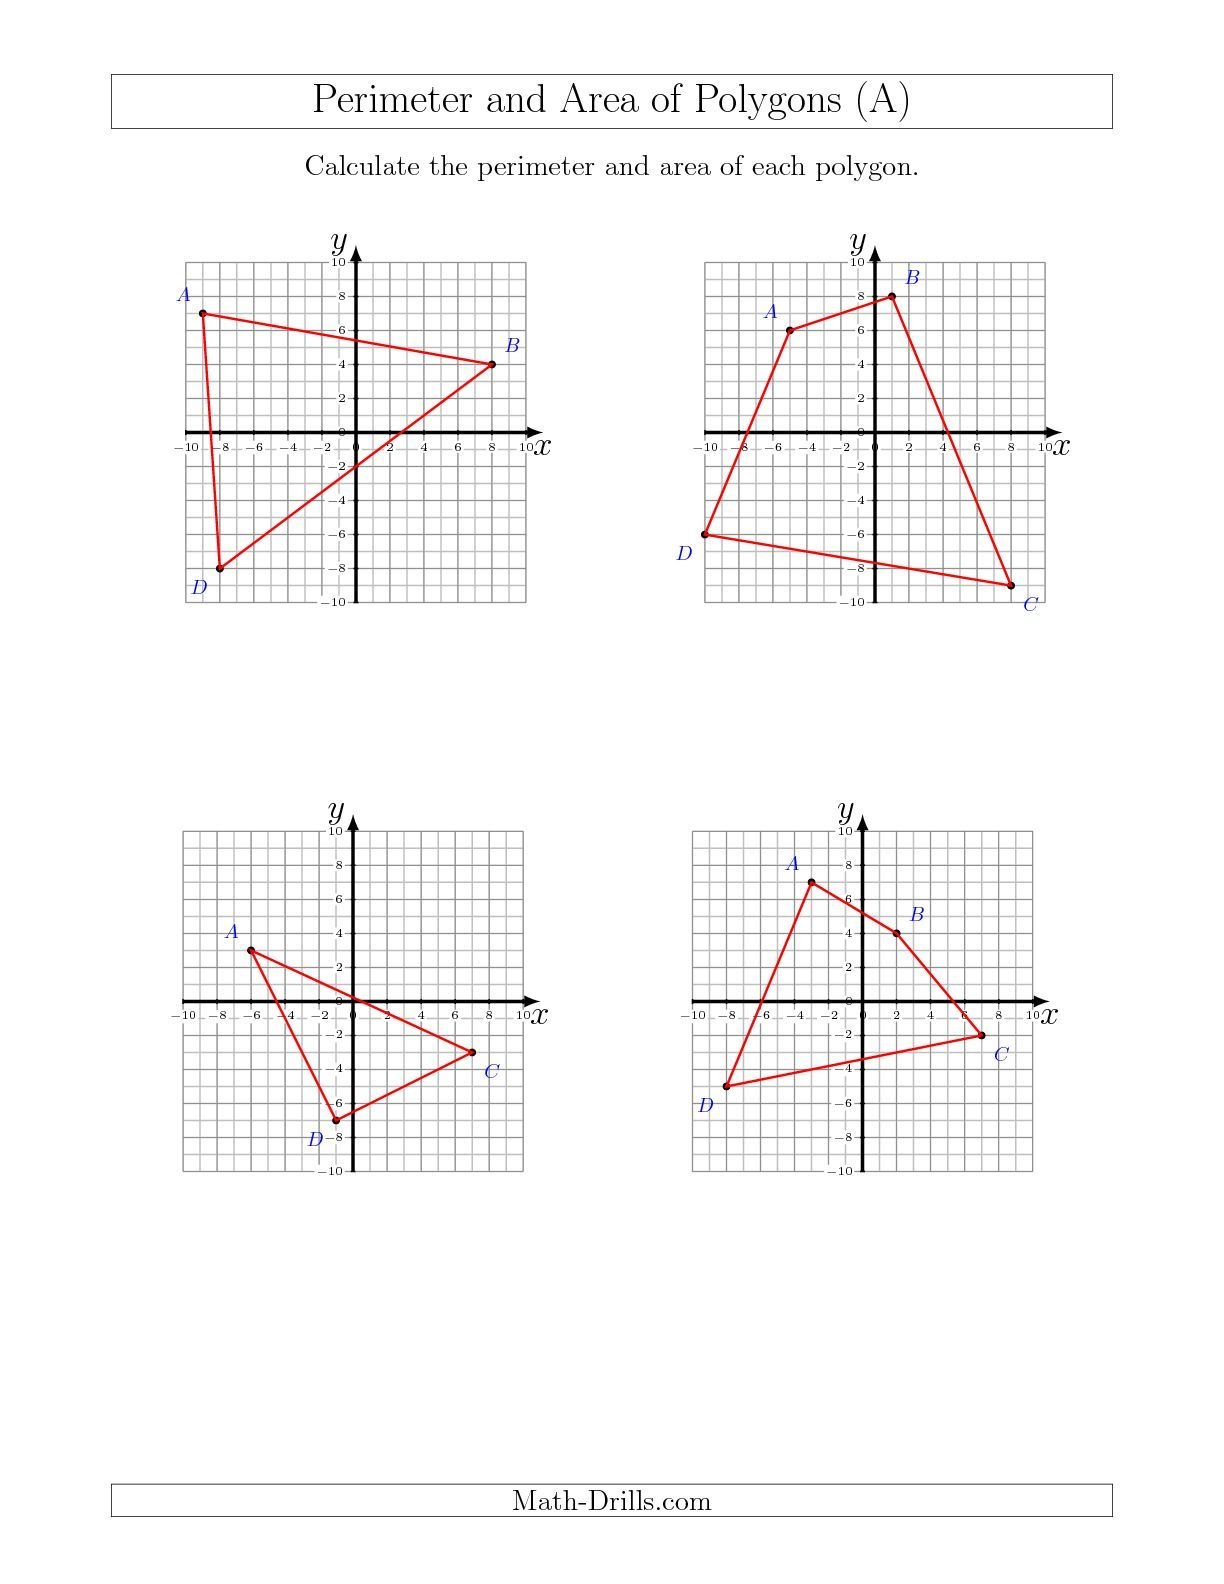 worksheet Areas Of Polygons Worksheet perimeter and area of polygons on coordinate planes a math worksheet